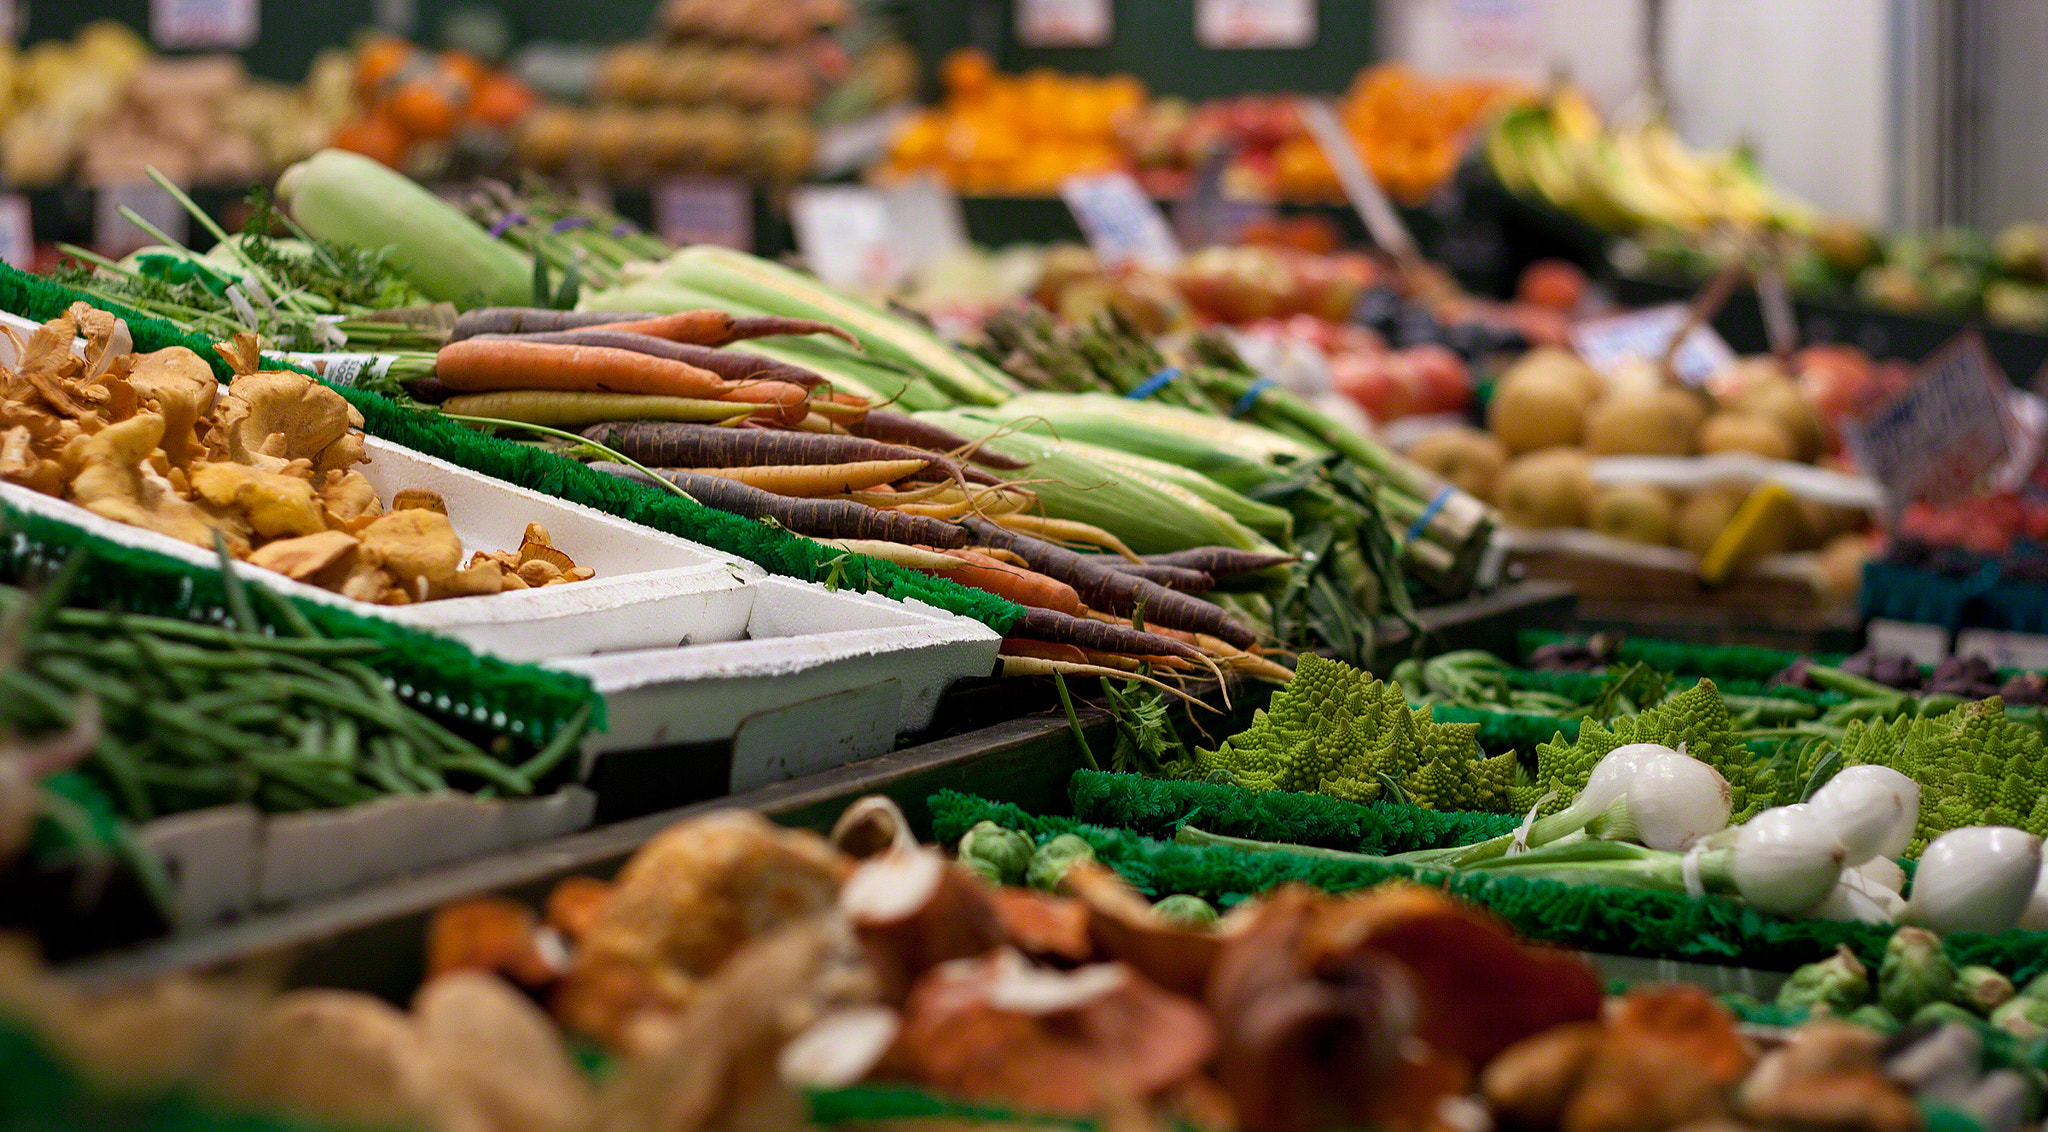 Photograph Vegetable Stand by David Gerard Burkhardt on 500px